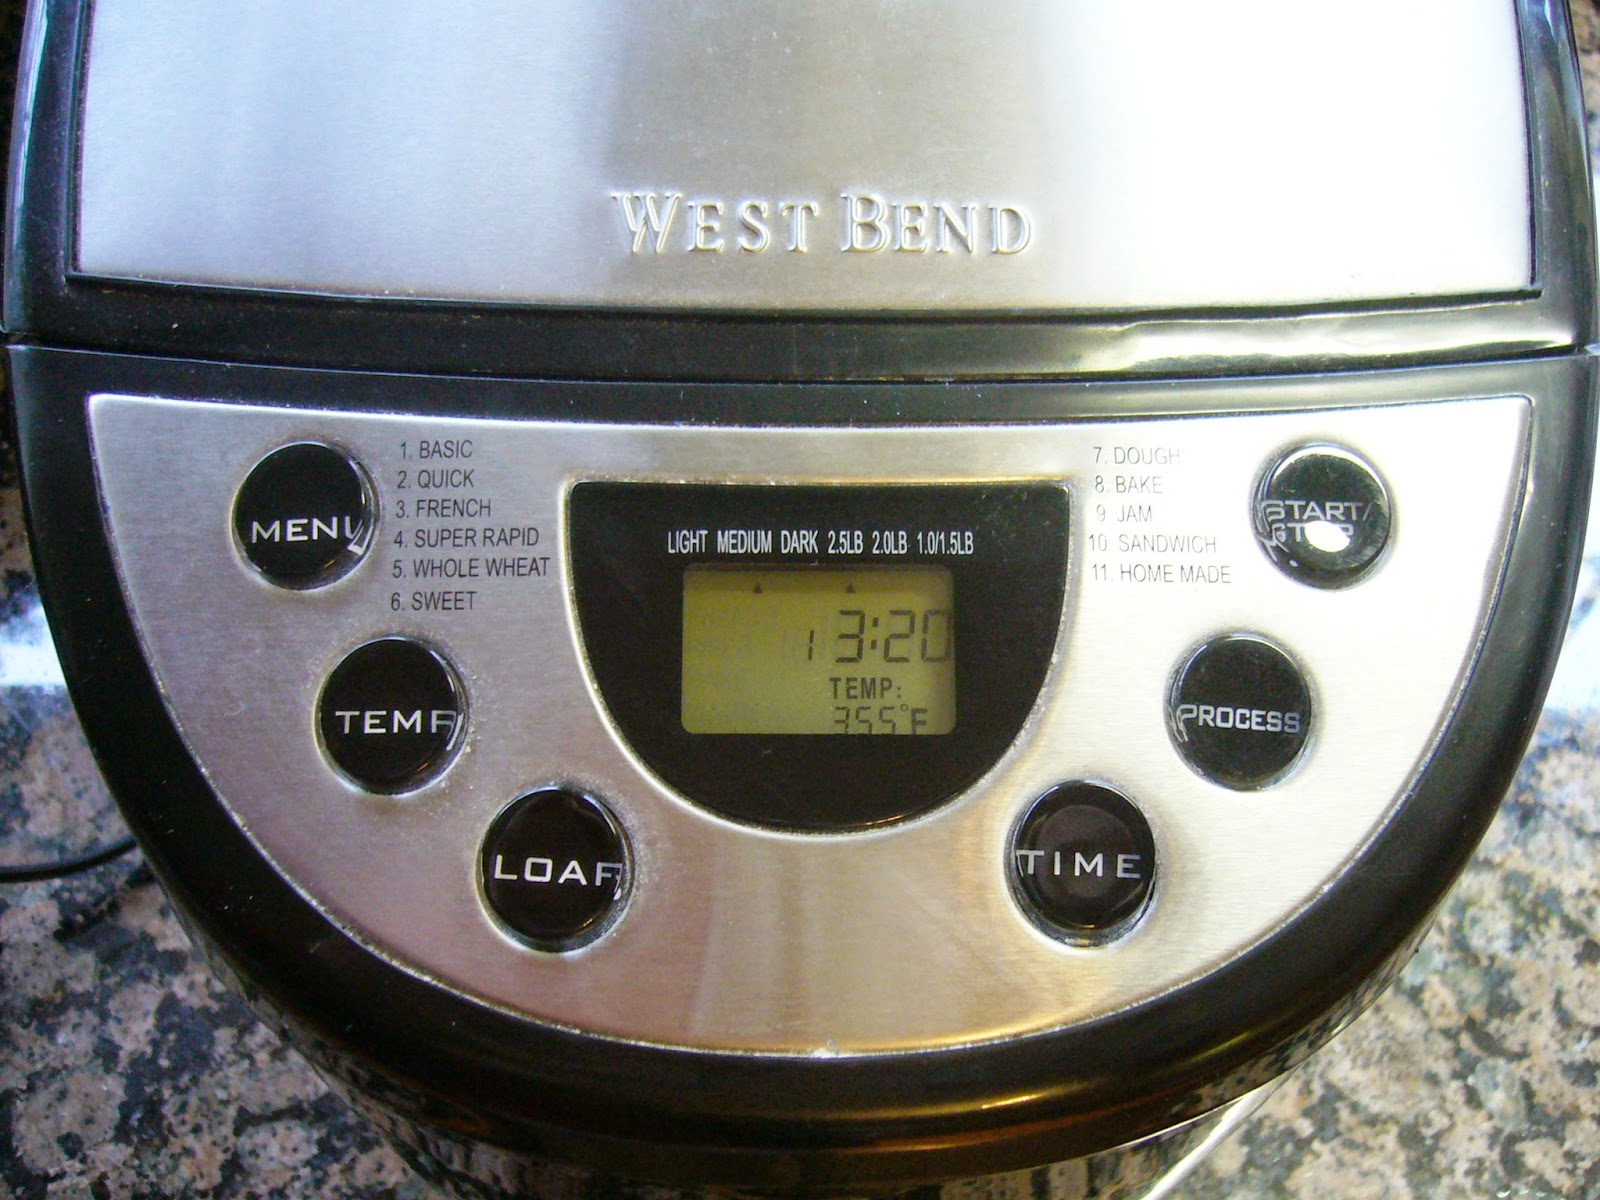 West Bend 2.5 Pound Hi-Rise Bread Machine